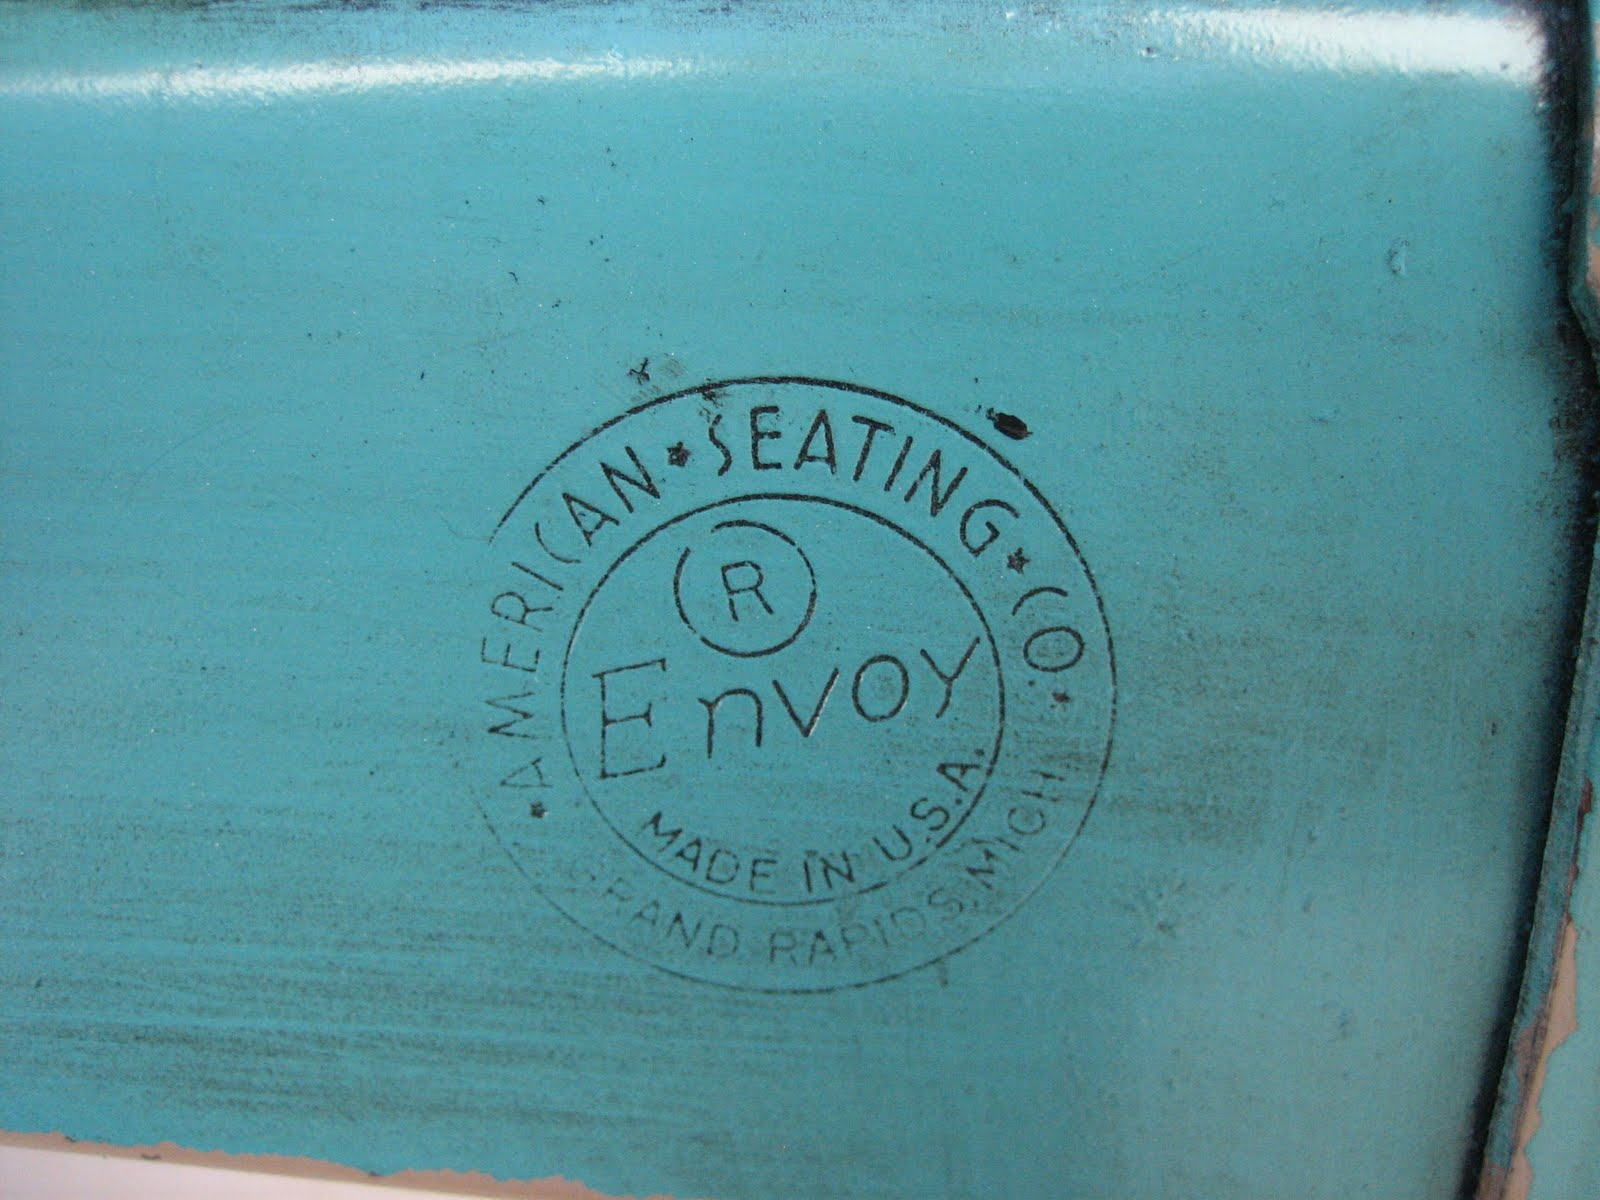 European paint finishes vintage industrial desks - European Paint Finishes Vintage Industrial Desks